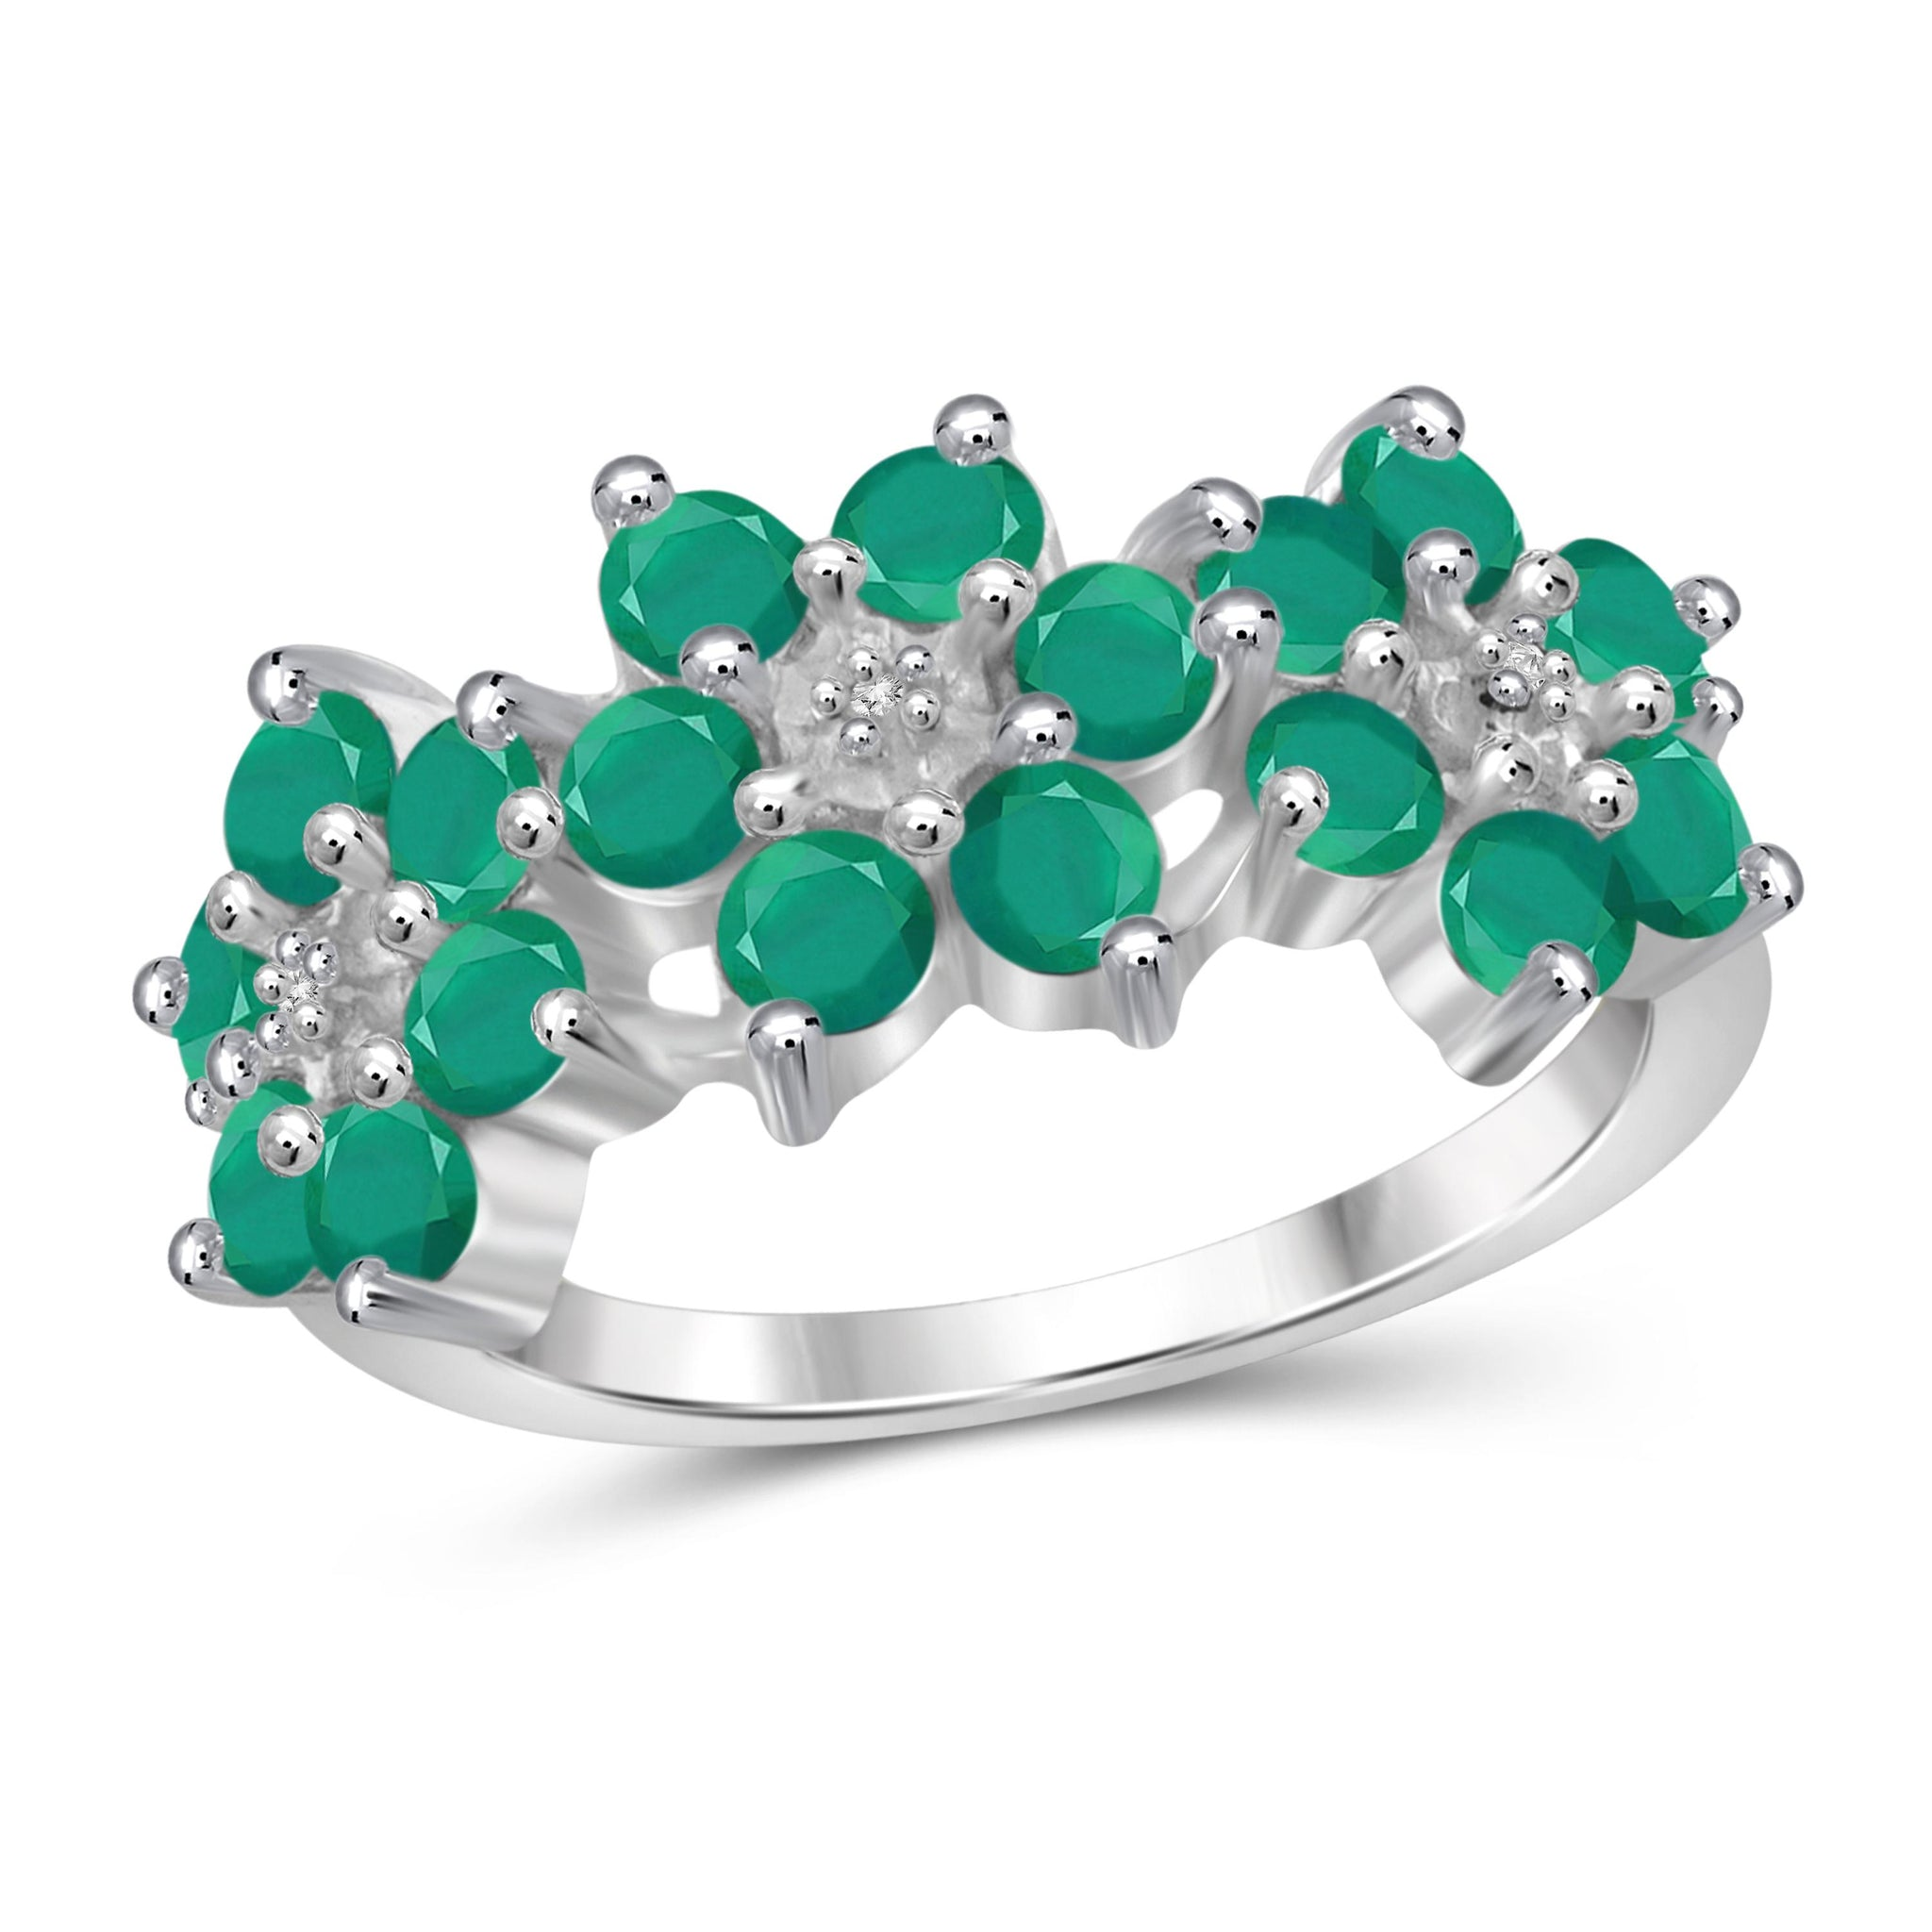 JewelonFire 2 Carat T.G.W. Emerald and White Diamond Accent Sterling Silver Flower Ring- Assorted Colors